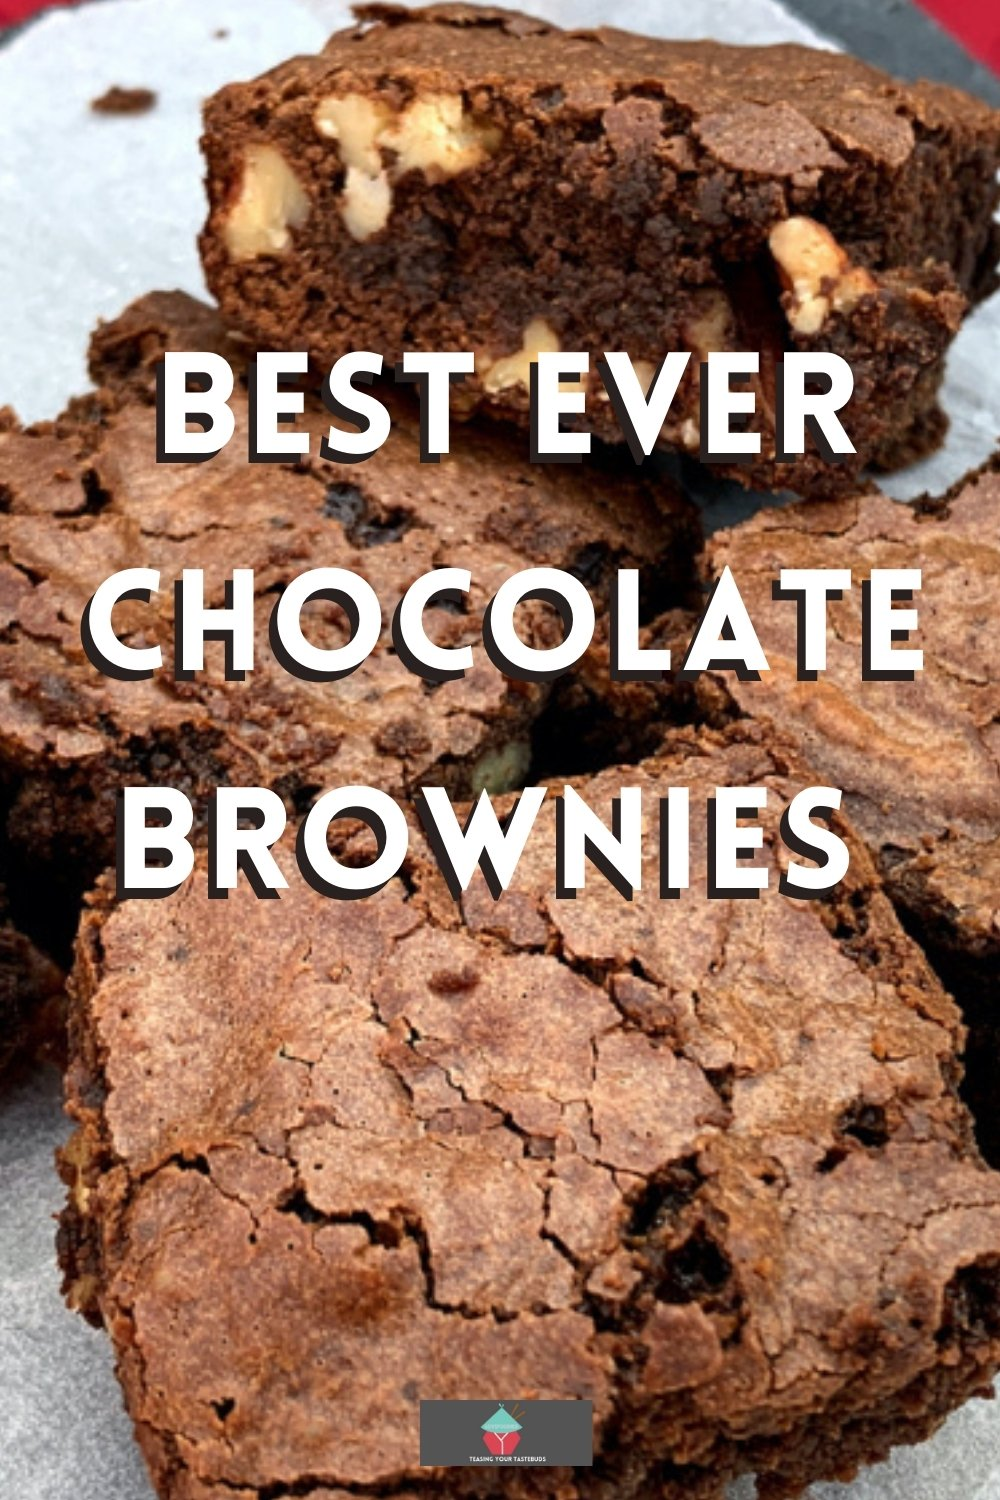 Best Ever Chocolate Brownies. Best ever chocolate brownies recipe, easy, fudgy, gooey brownies, made from scratch. These rich in chocolate chewy brownies are delicious served warm with whipped cream.